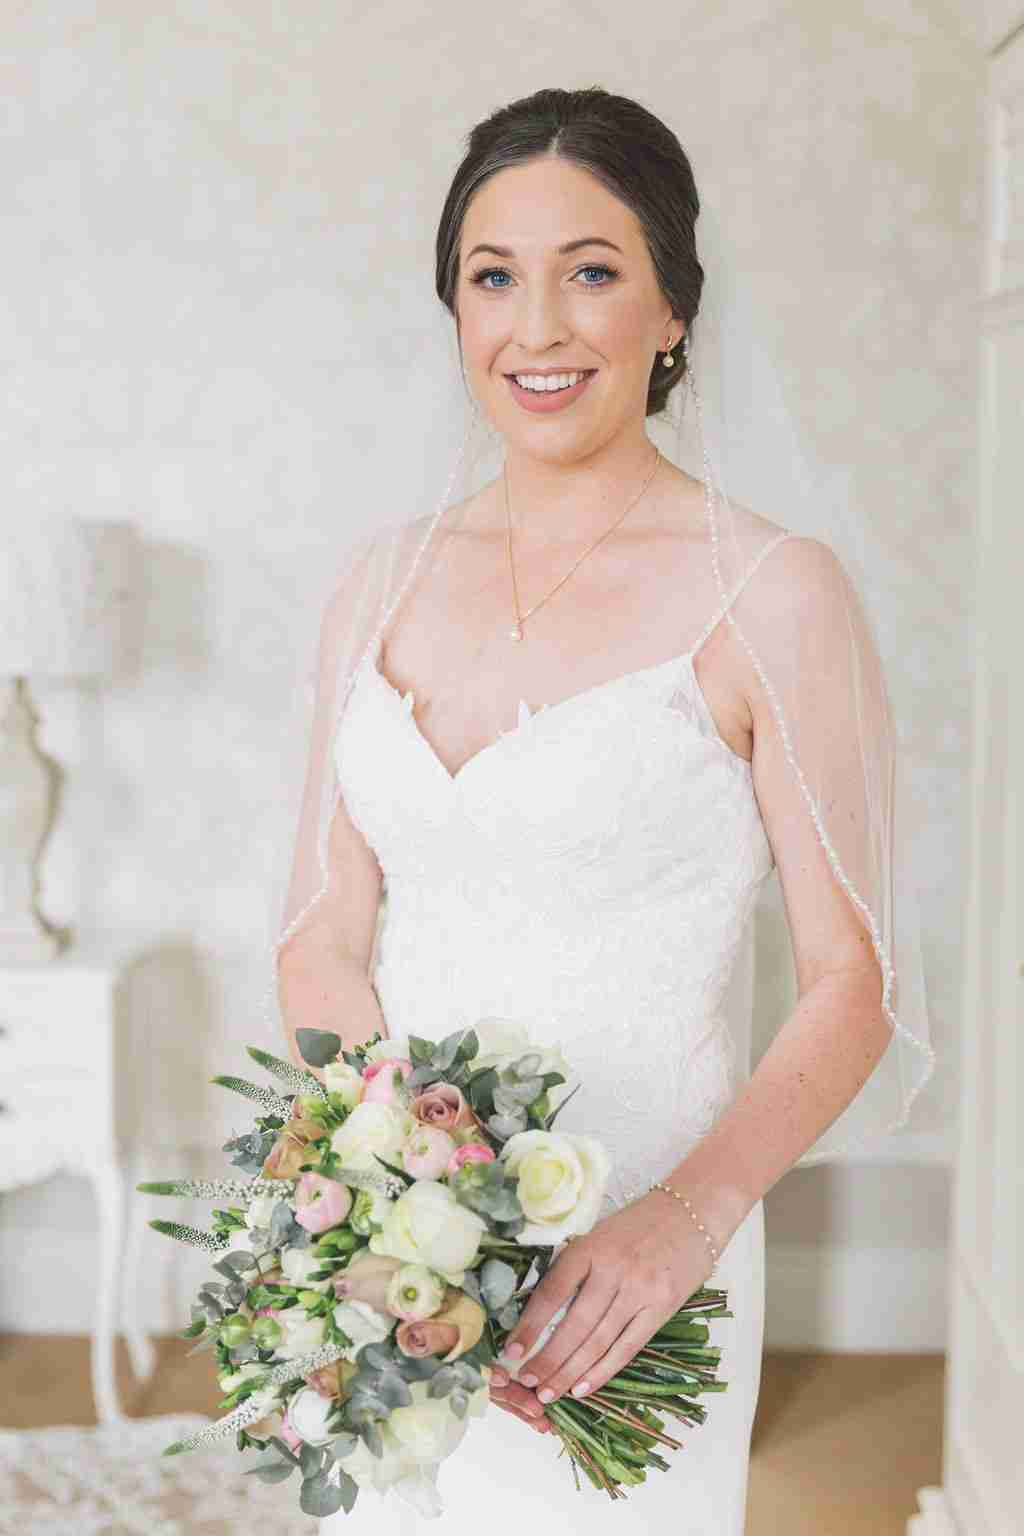 Bride with natural, wedding makeup and sleek bridal updo poses with bouquet.